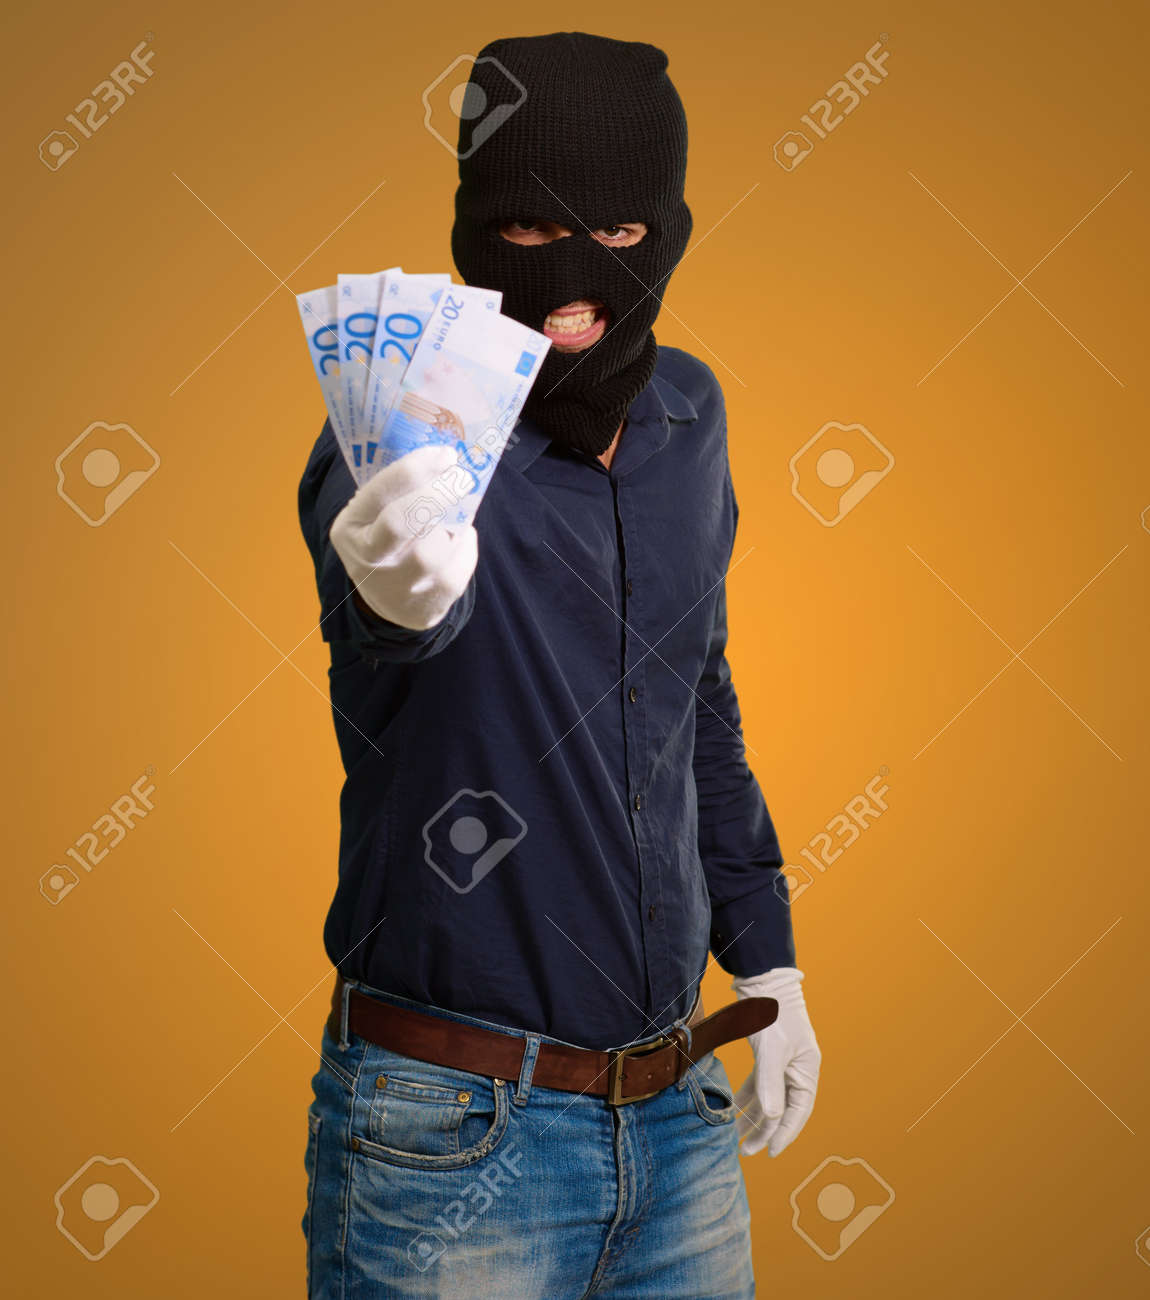 Burglar In Face Mask On Coloured Background Stock Photo - 15187262